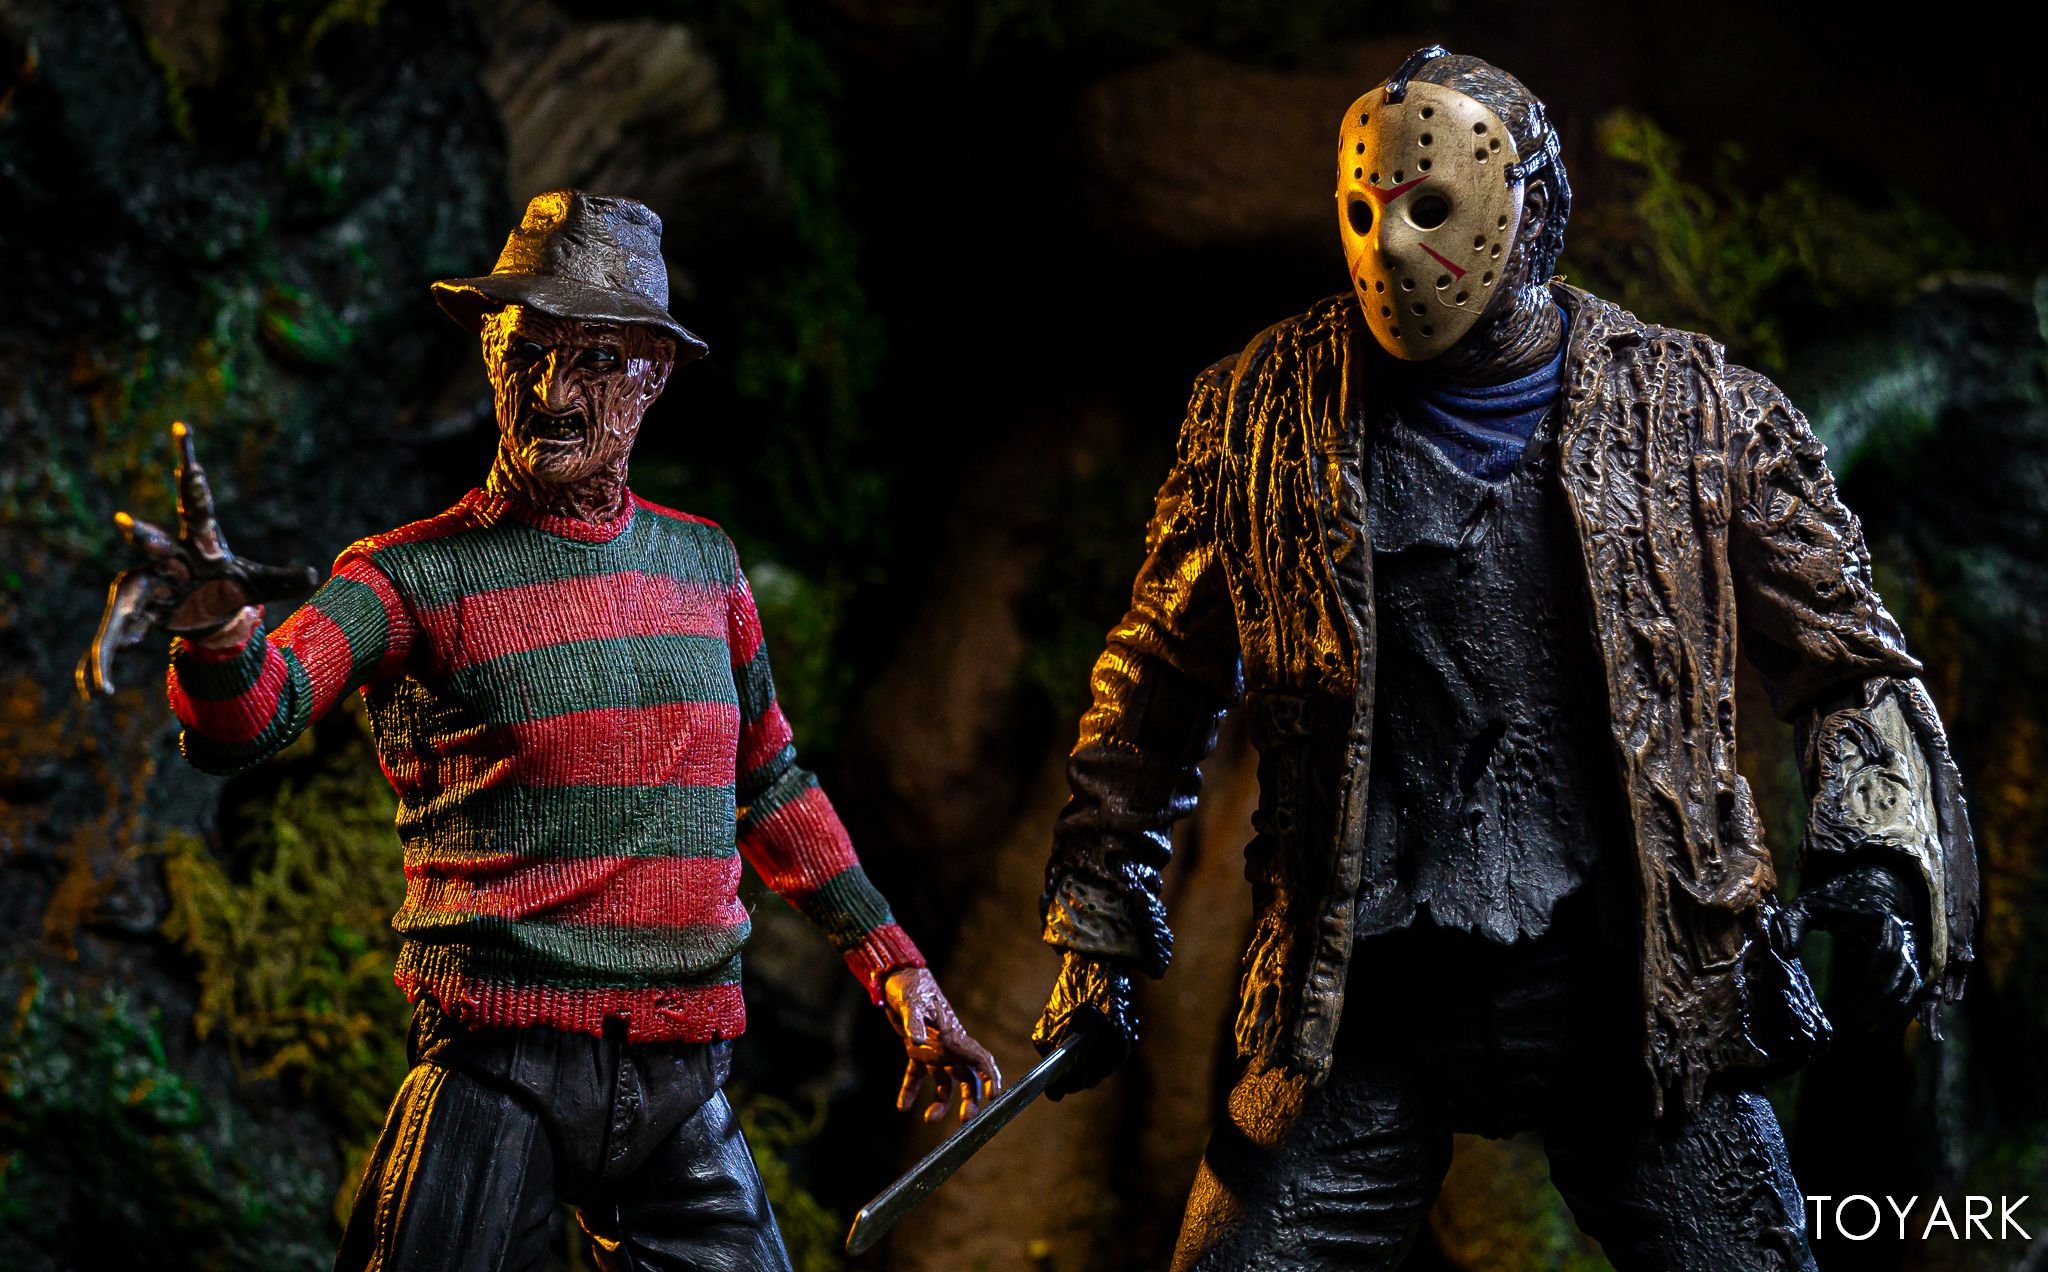 https://news.toyark.com/wp-content/uploads/sites/4/2019/07/FvJ-Jason-Voorhees-NECA-034.jpg